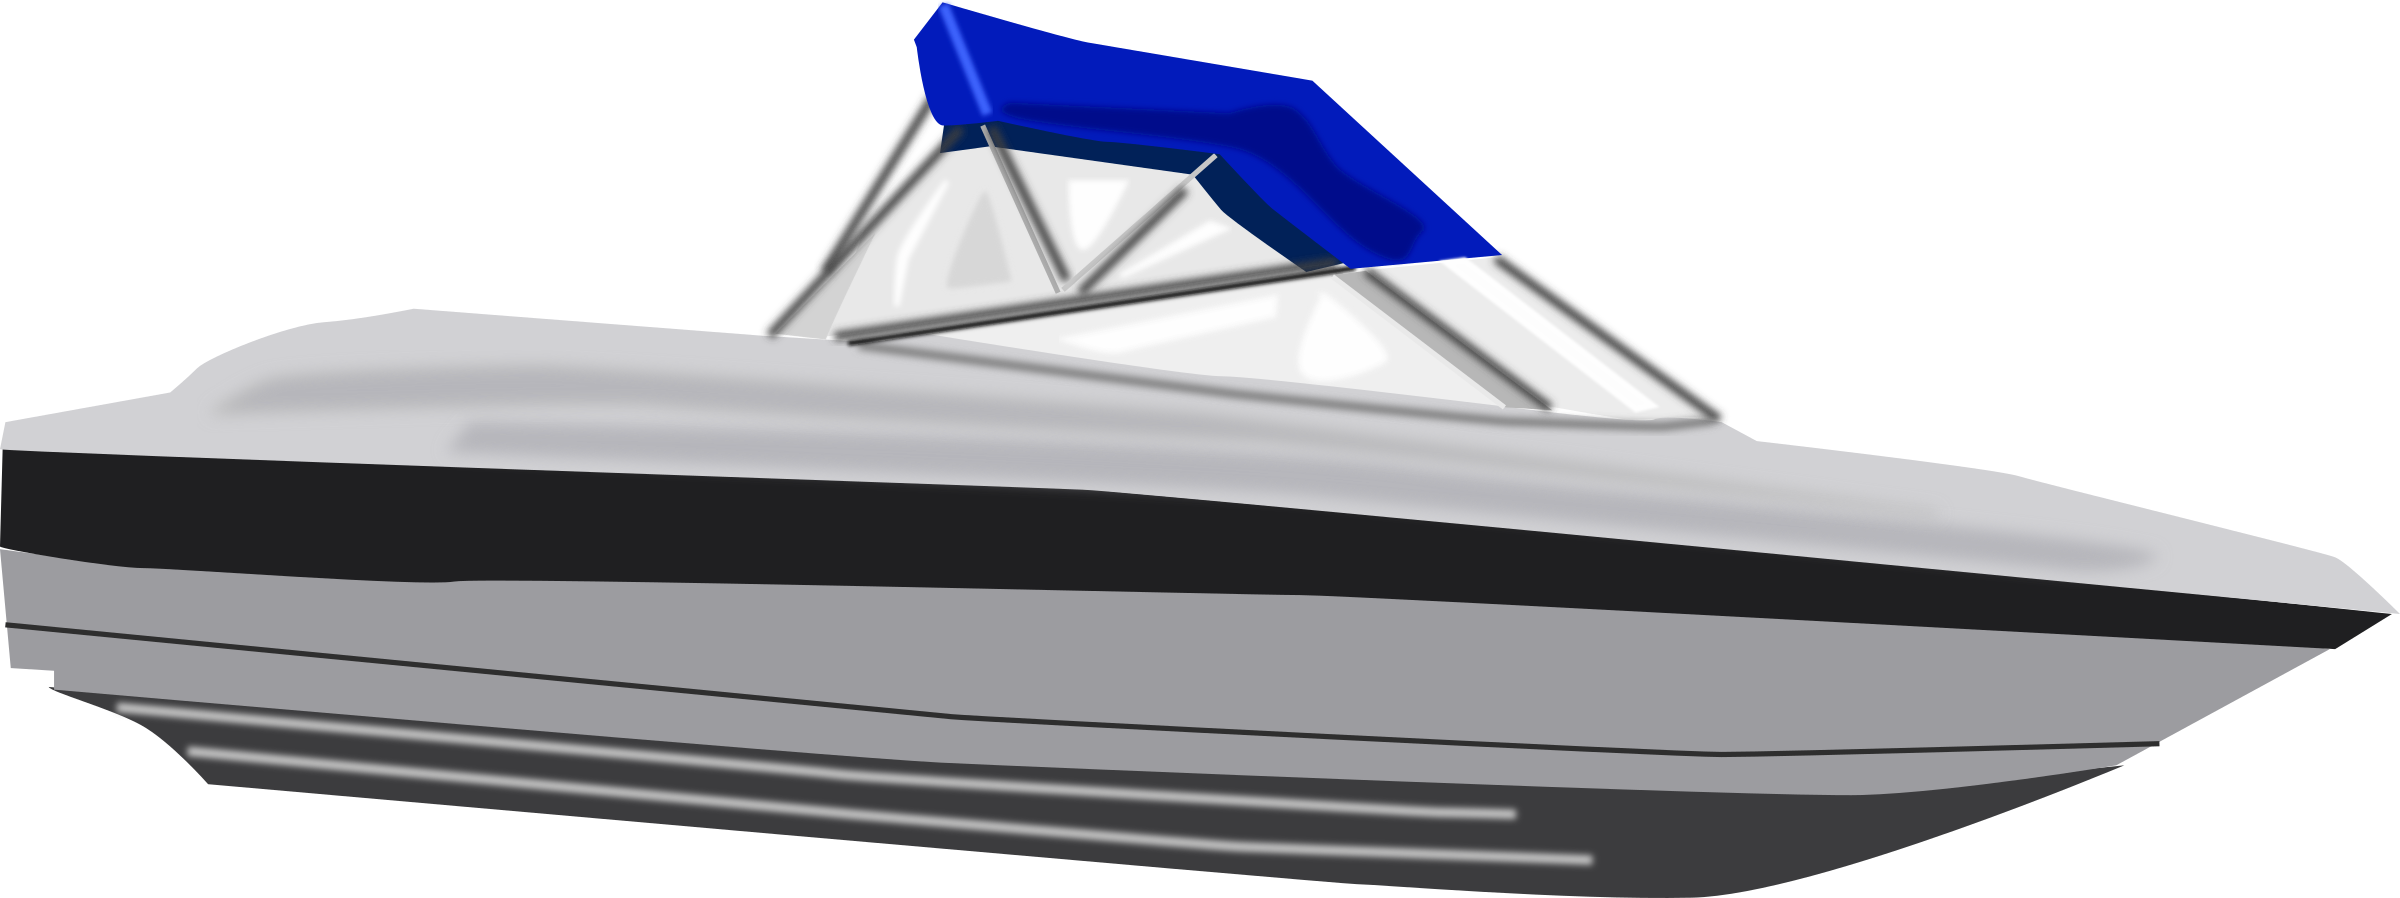 Free Motor Boat Cliparts, Download Free Clip Art, Free Clip.